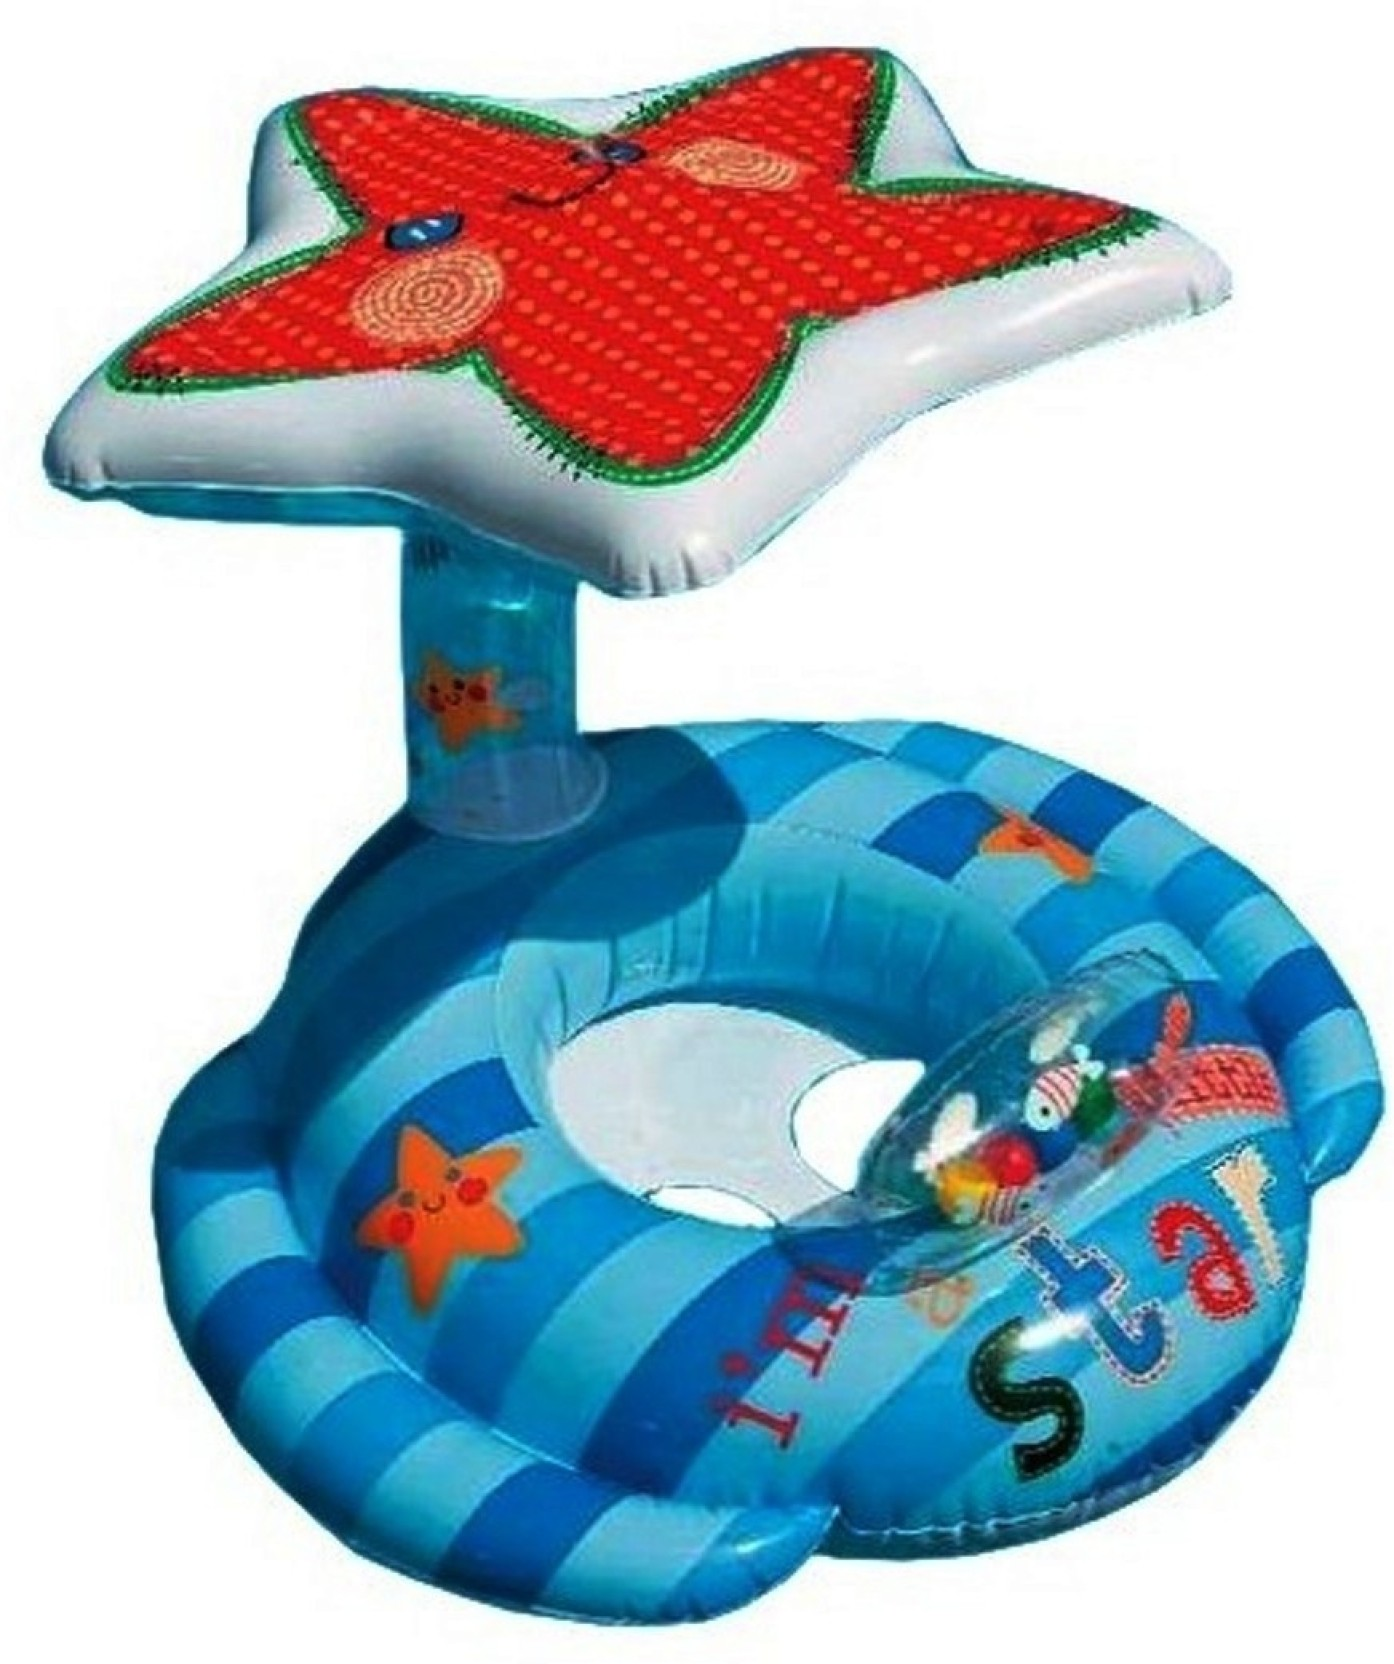 Inflatable Sofa Bed Flipkart: Intex Lil Star Inflatable Baby Float Price In India